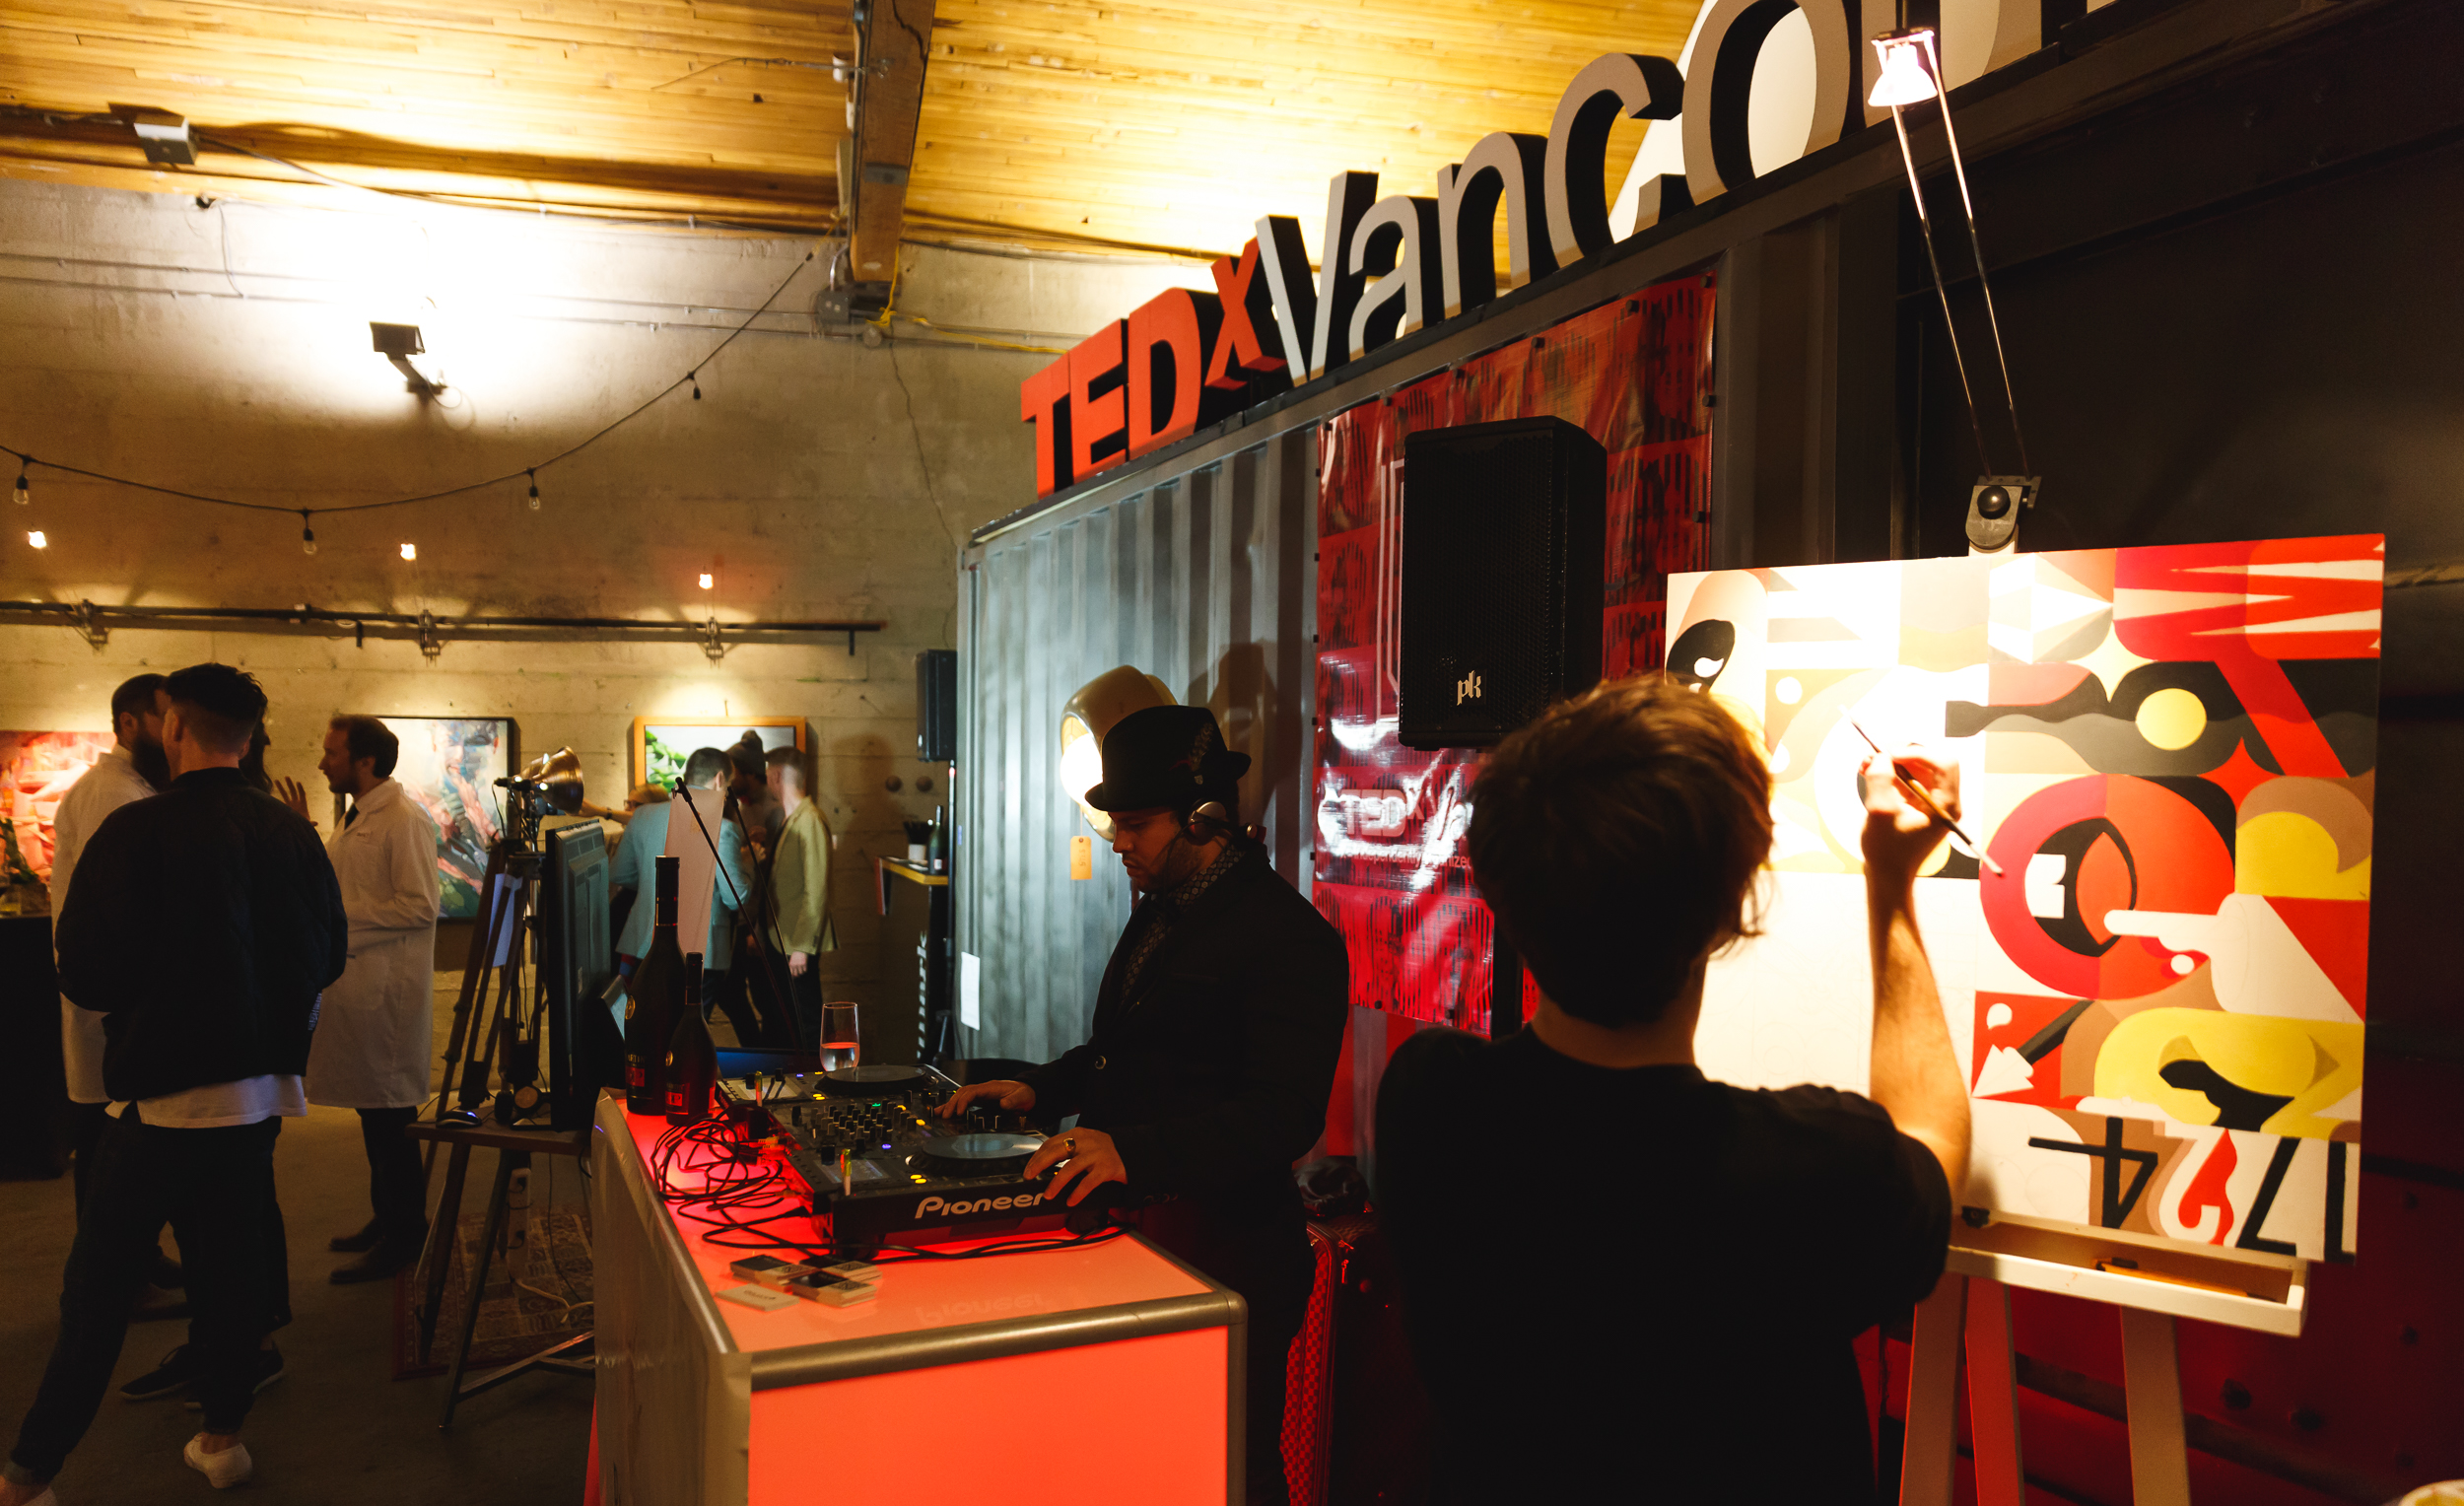 TED-Art-Vancouver-image21.jpg